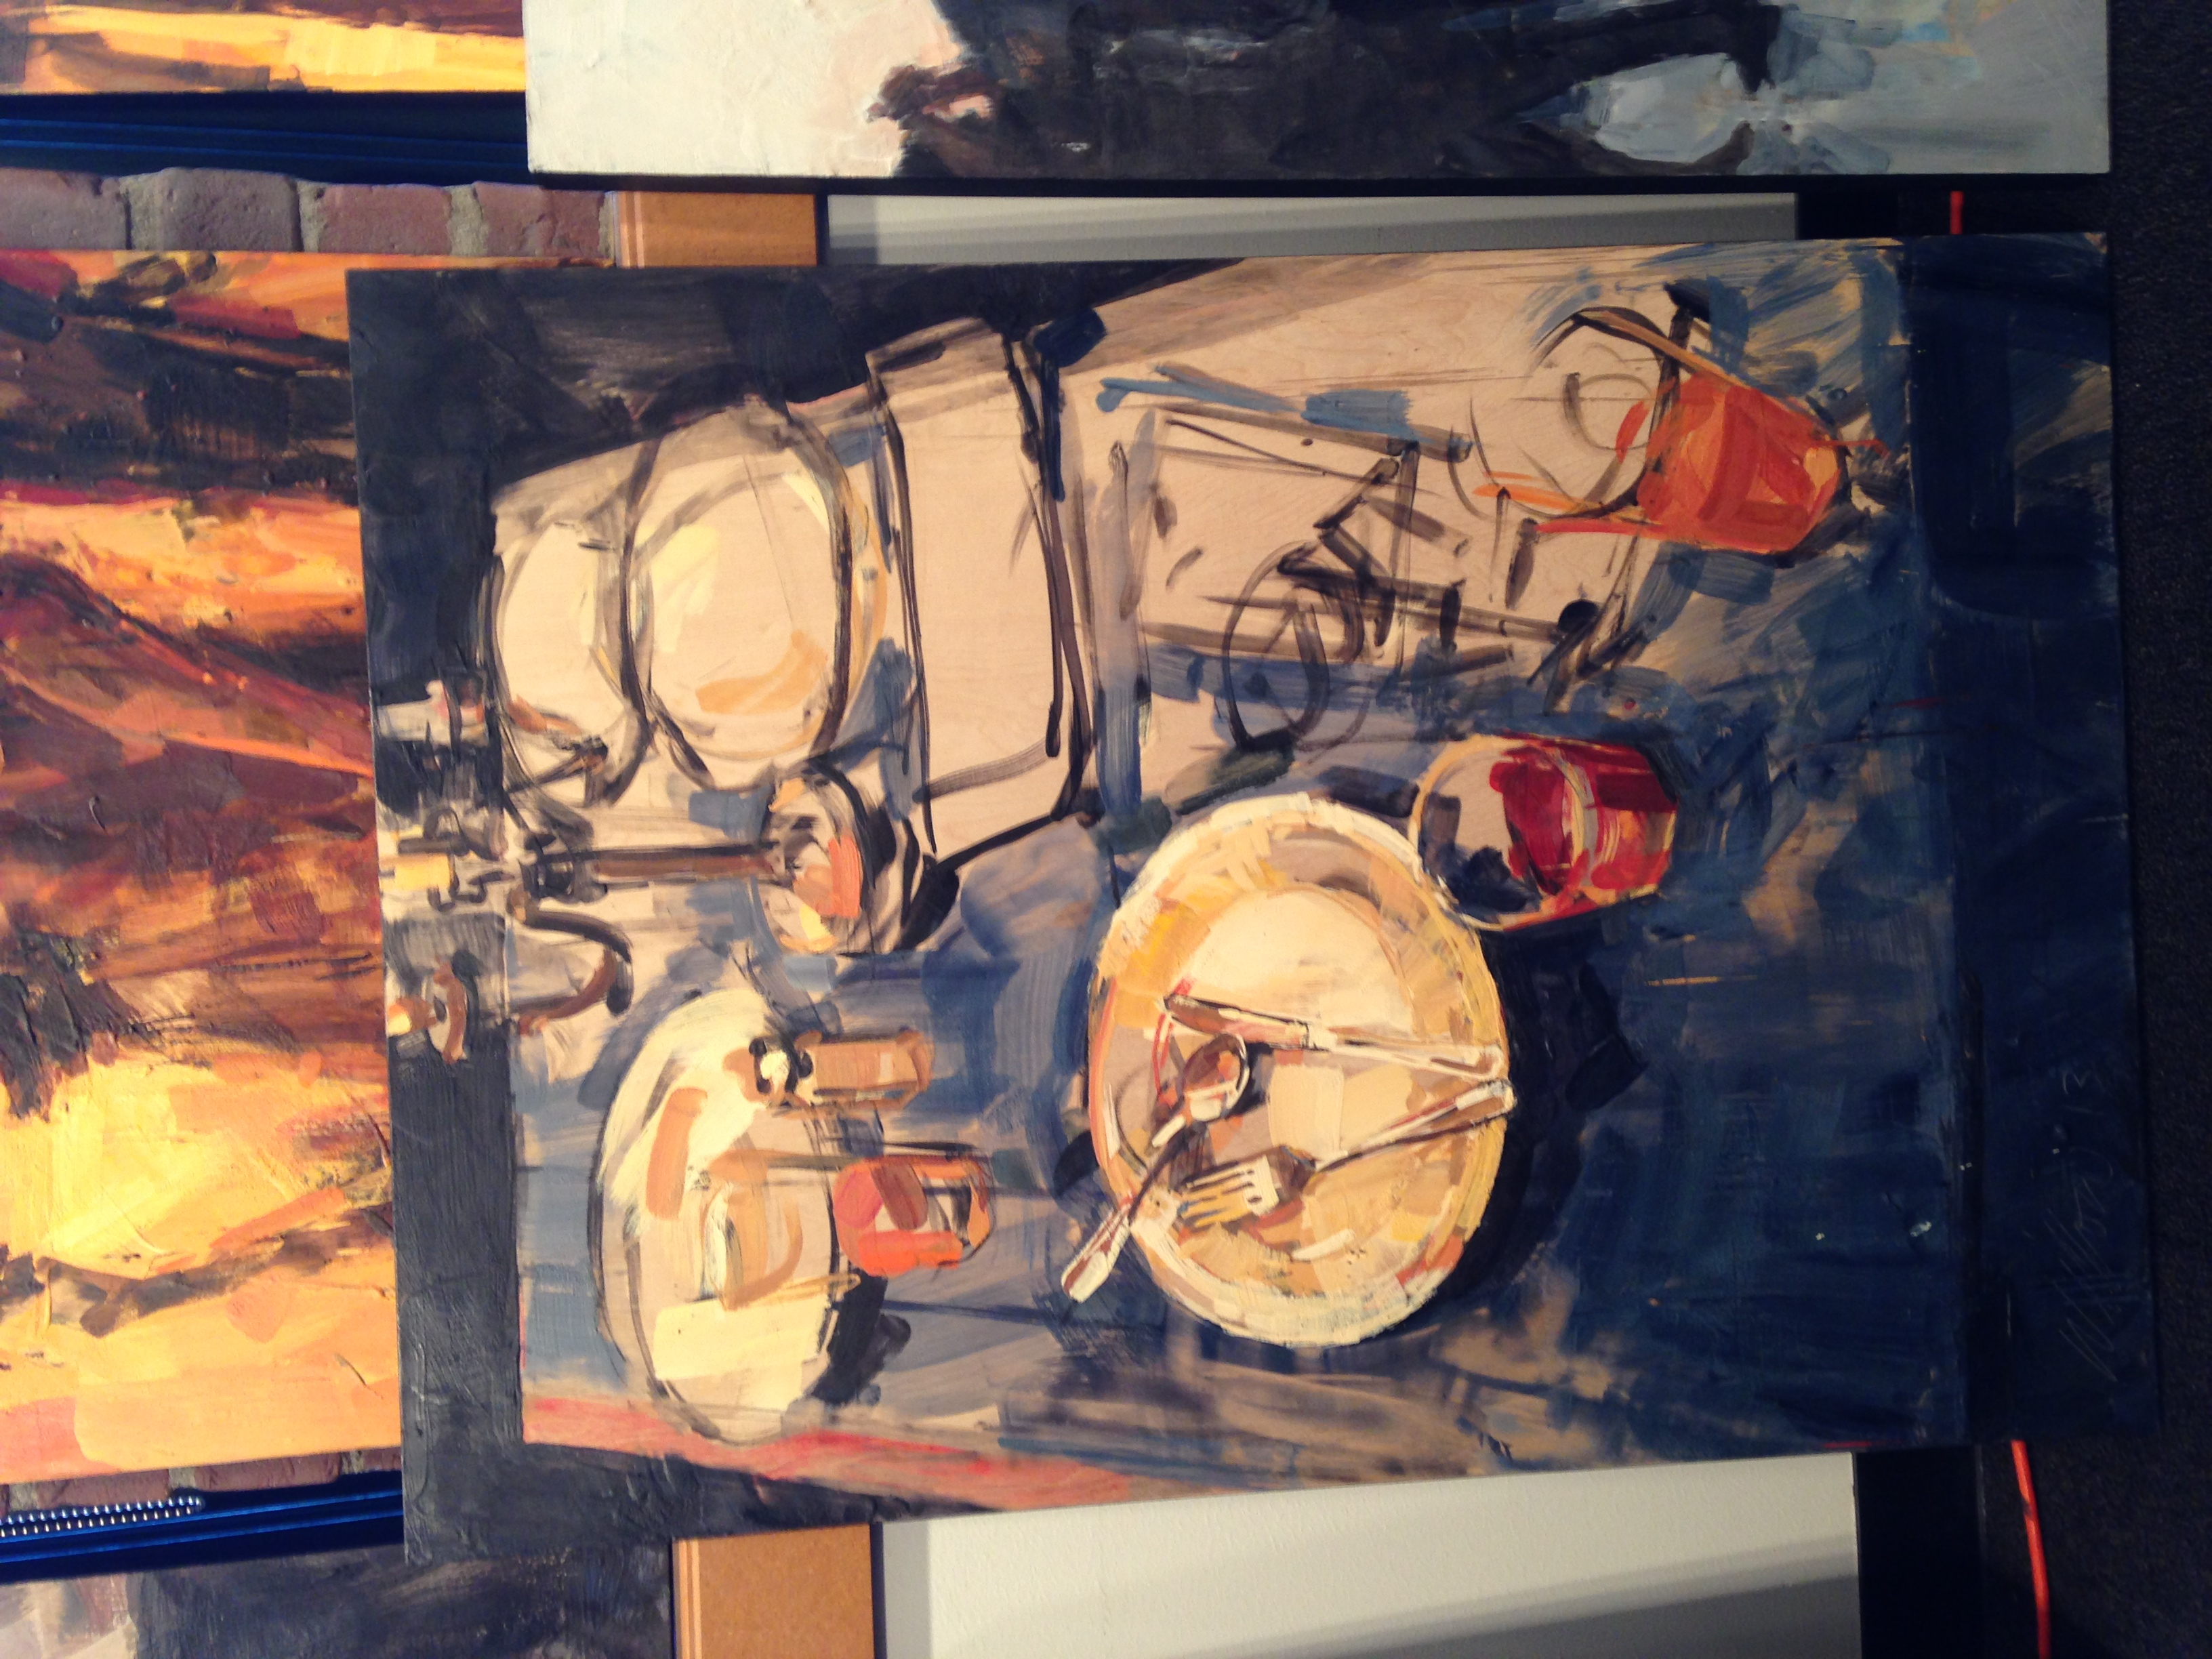 I would love to own one of Willow Bader's dinner table paintings!